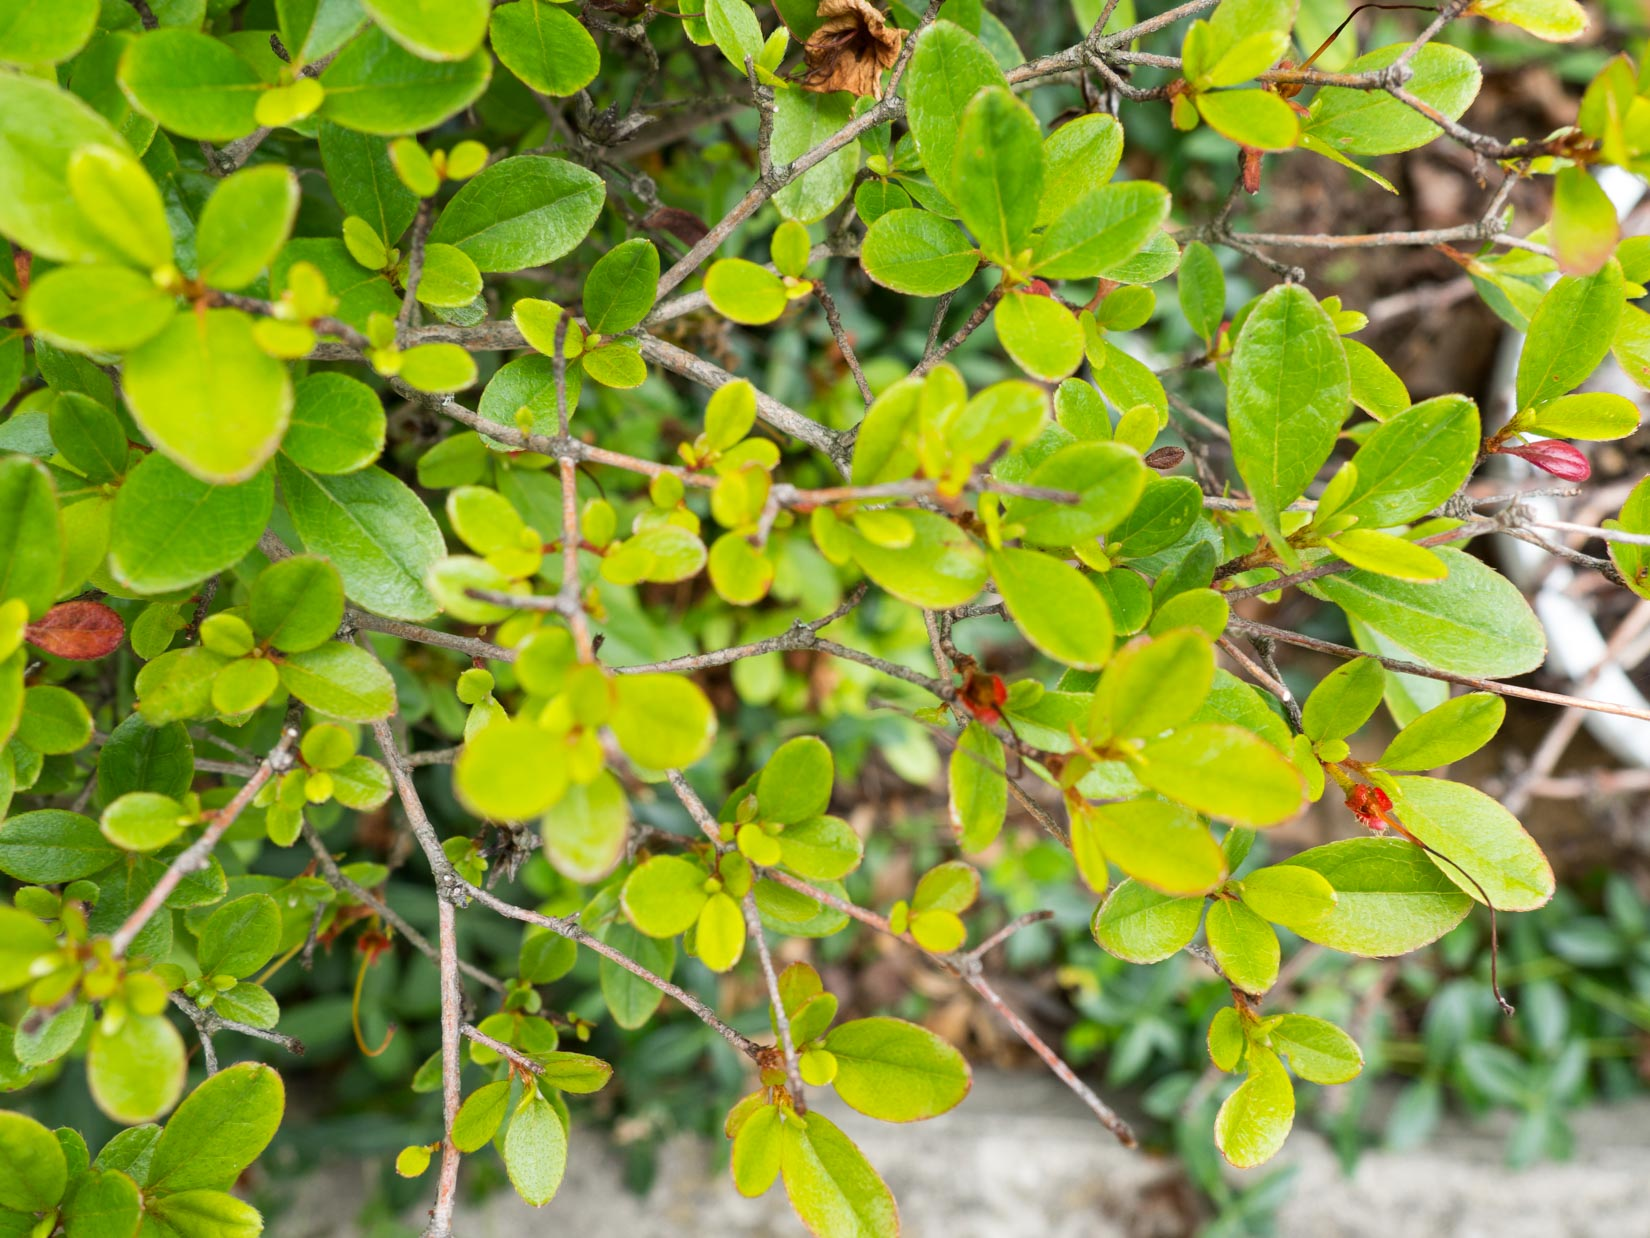 Leaves on Bush with Branches